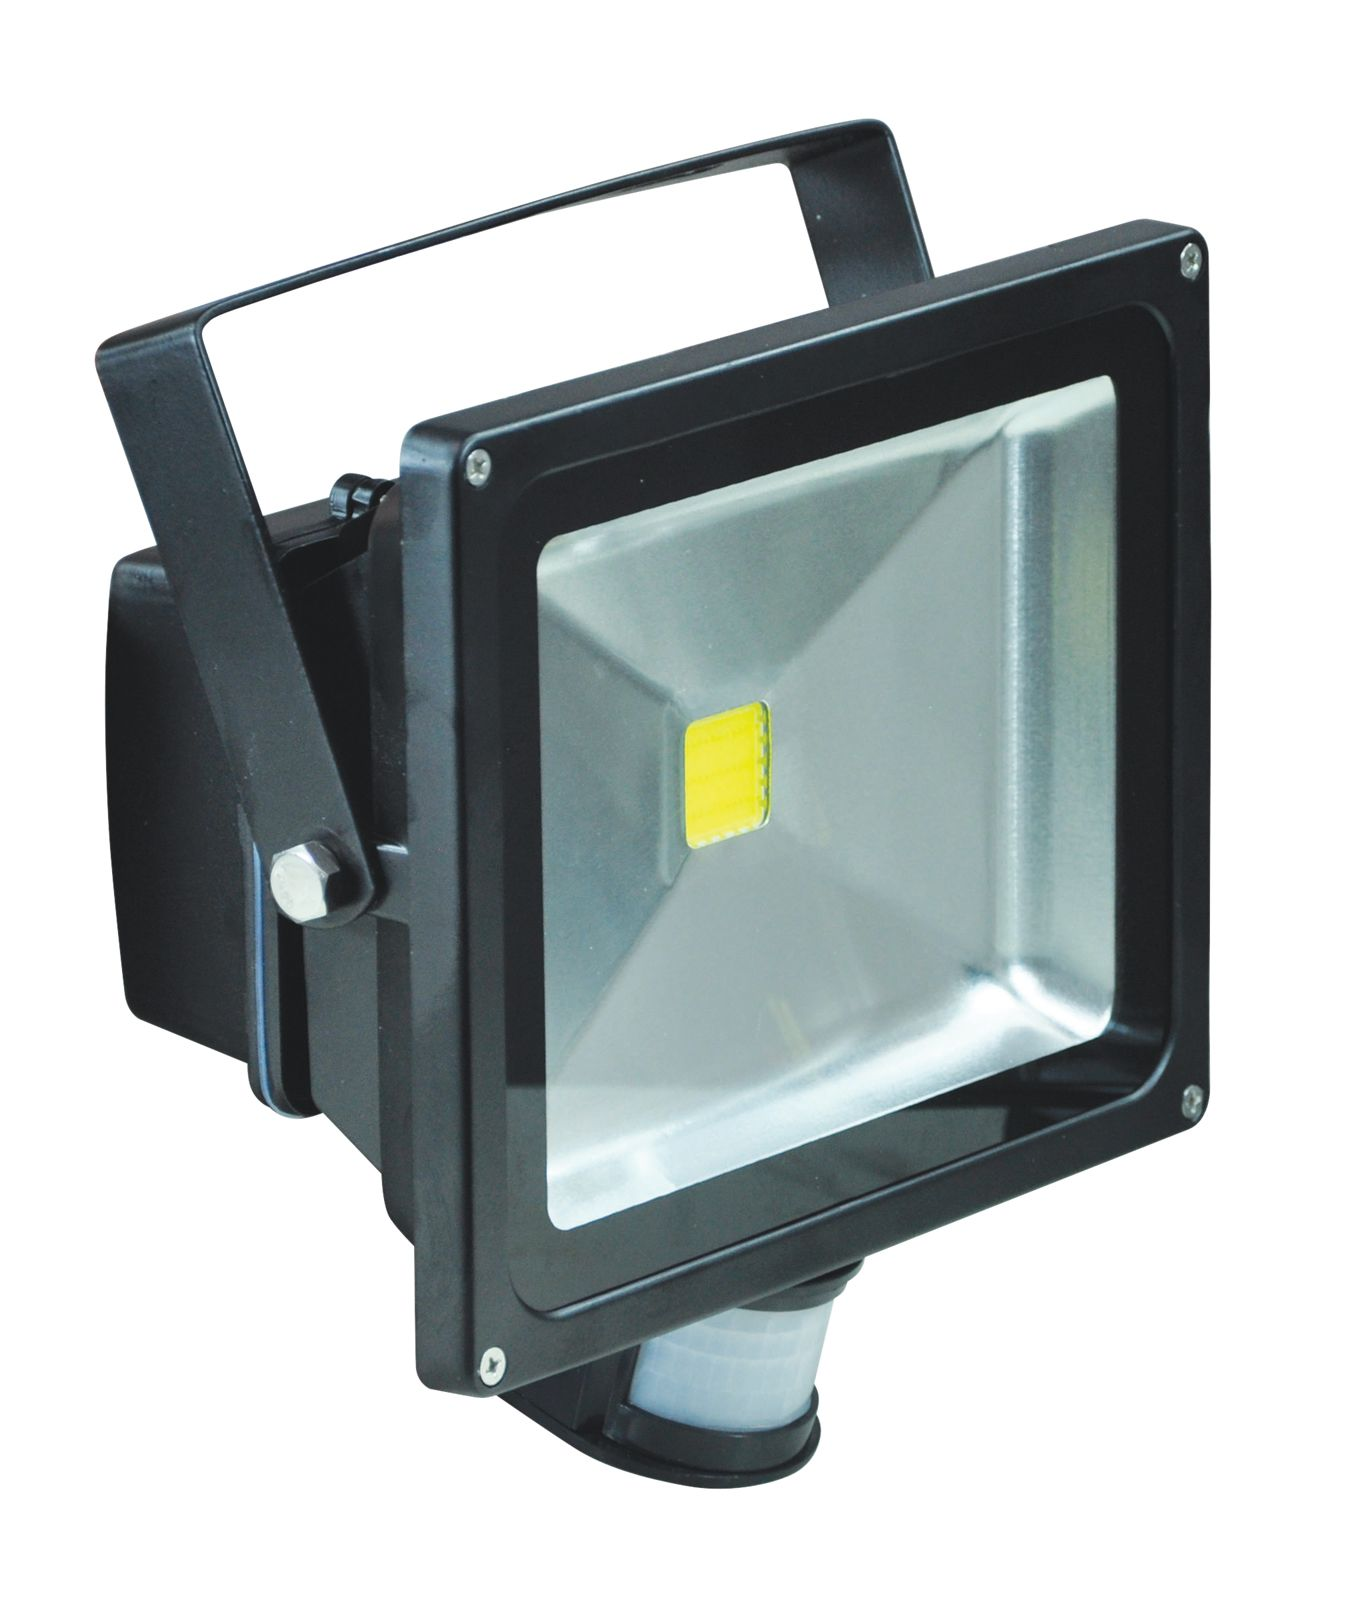 30W LED Waterproof Outdoor Security Flood Light With PIR